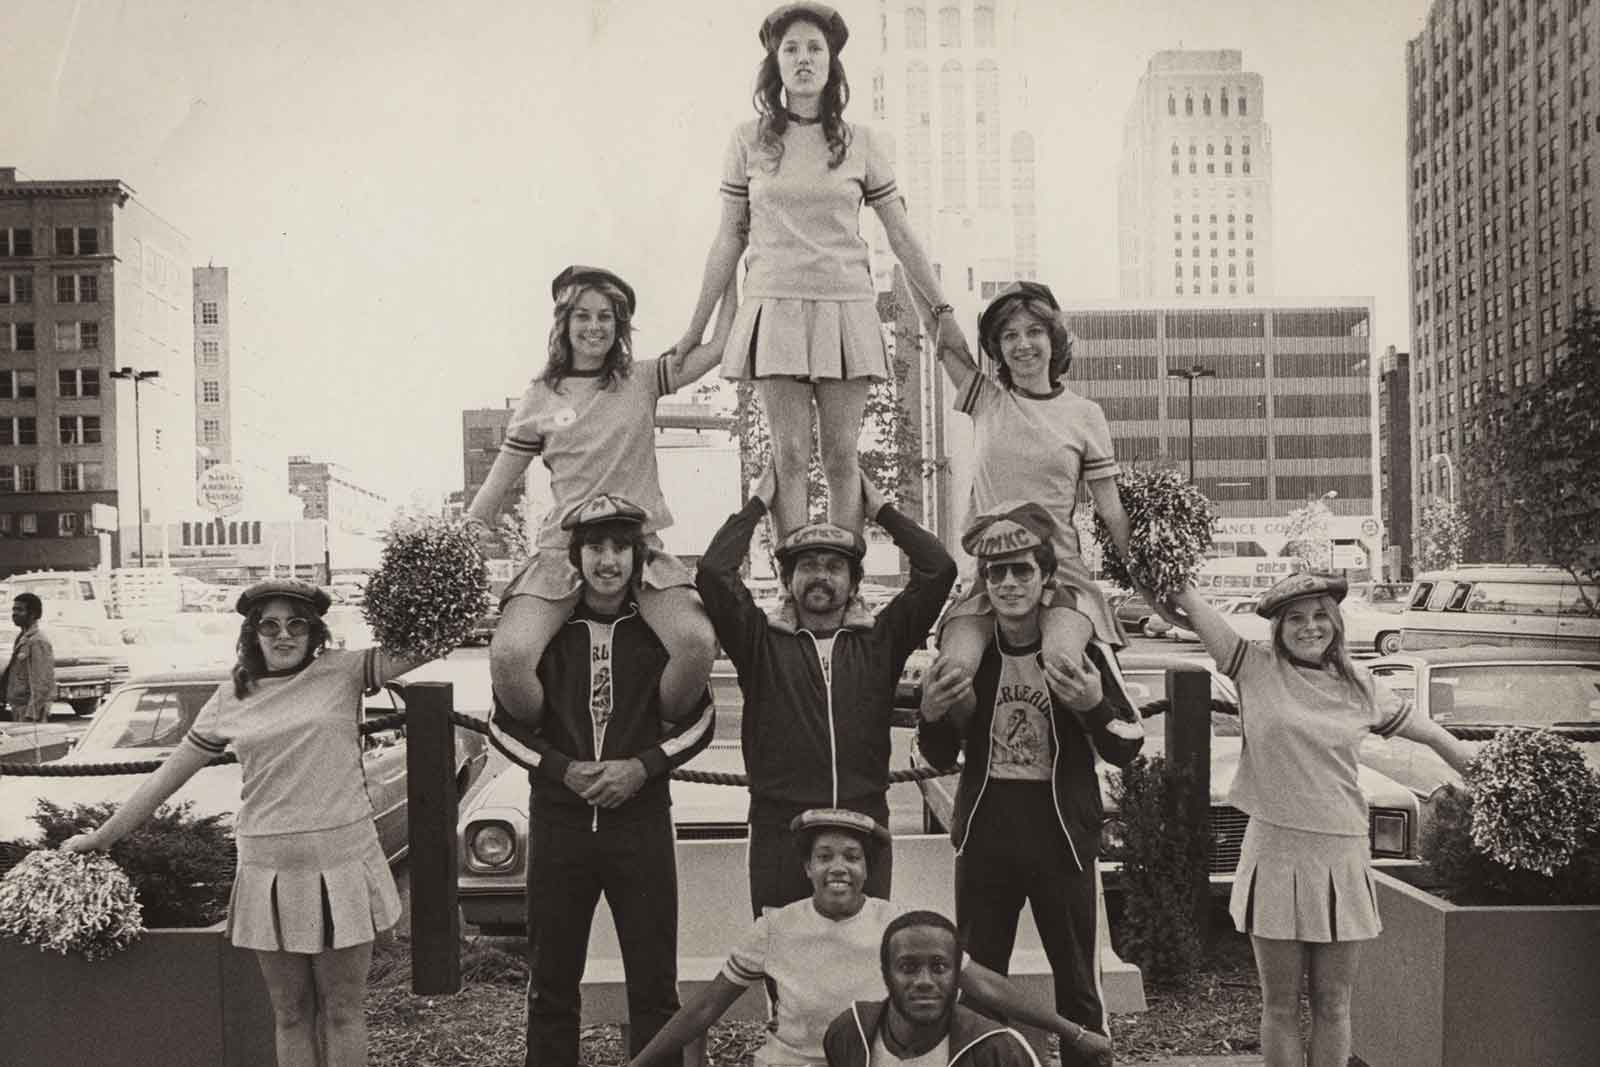 UMKC cheerleaders in black and white picture stand in a pyramid